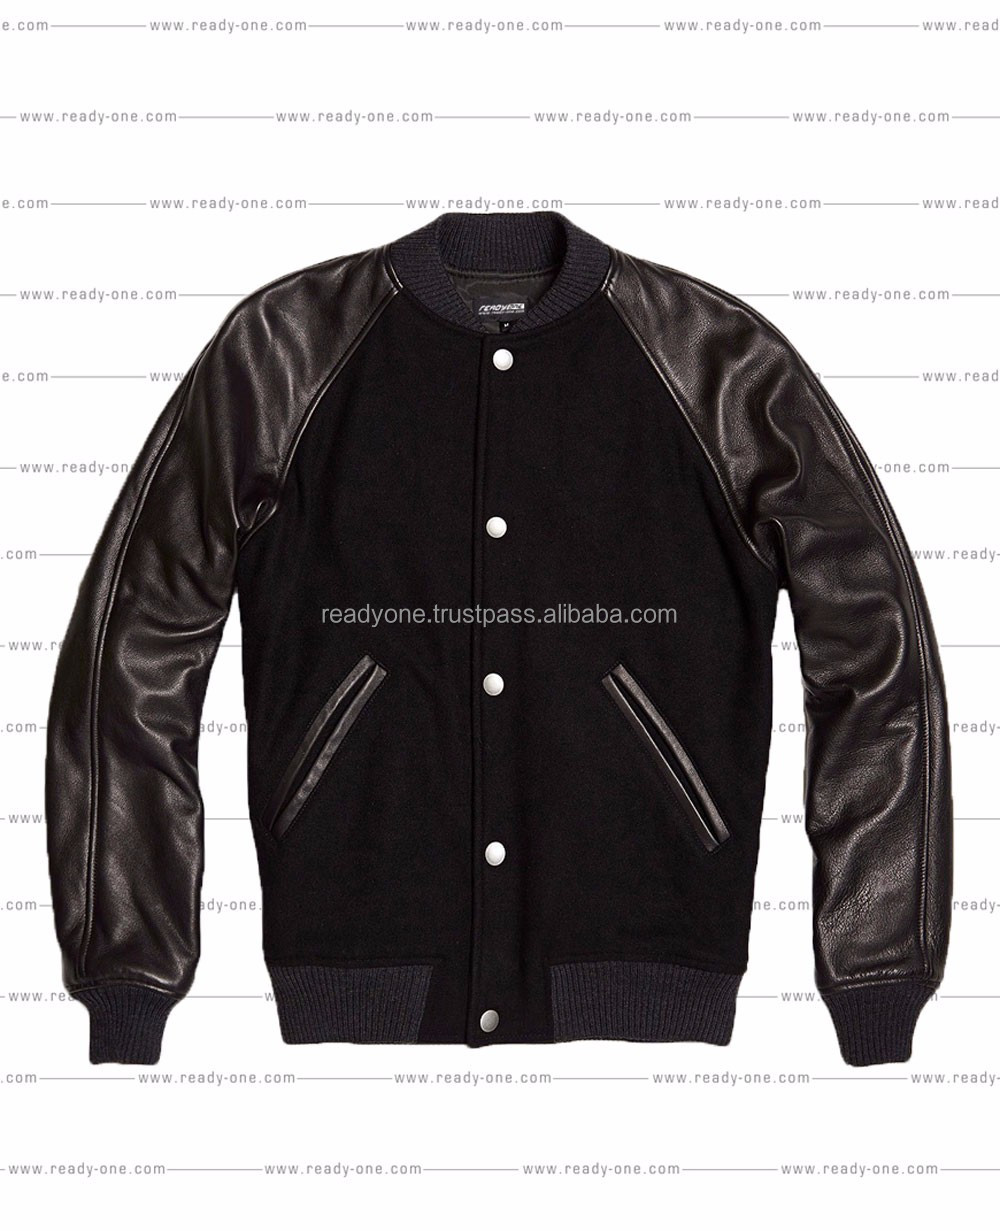 Vasity Jacket with Real Leather Sleeves/ Varsity Jacket/American Baseball Varsity Jacket